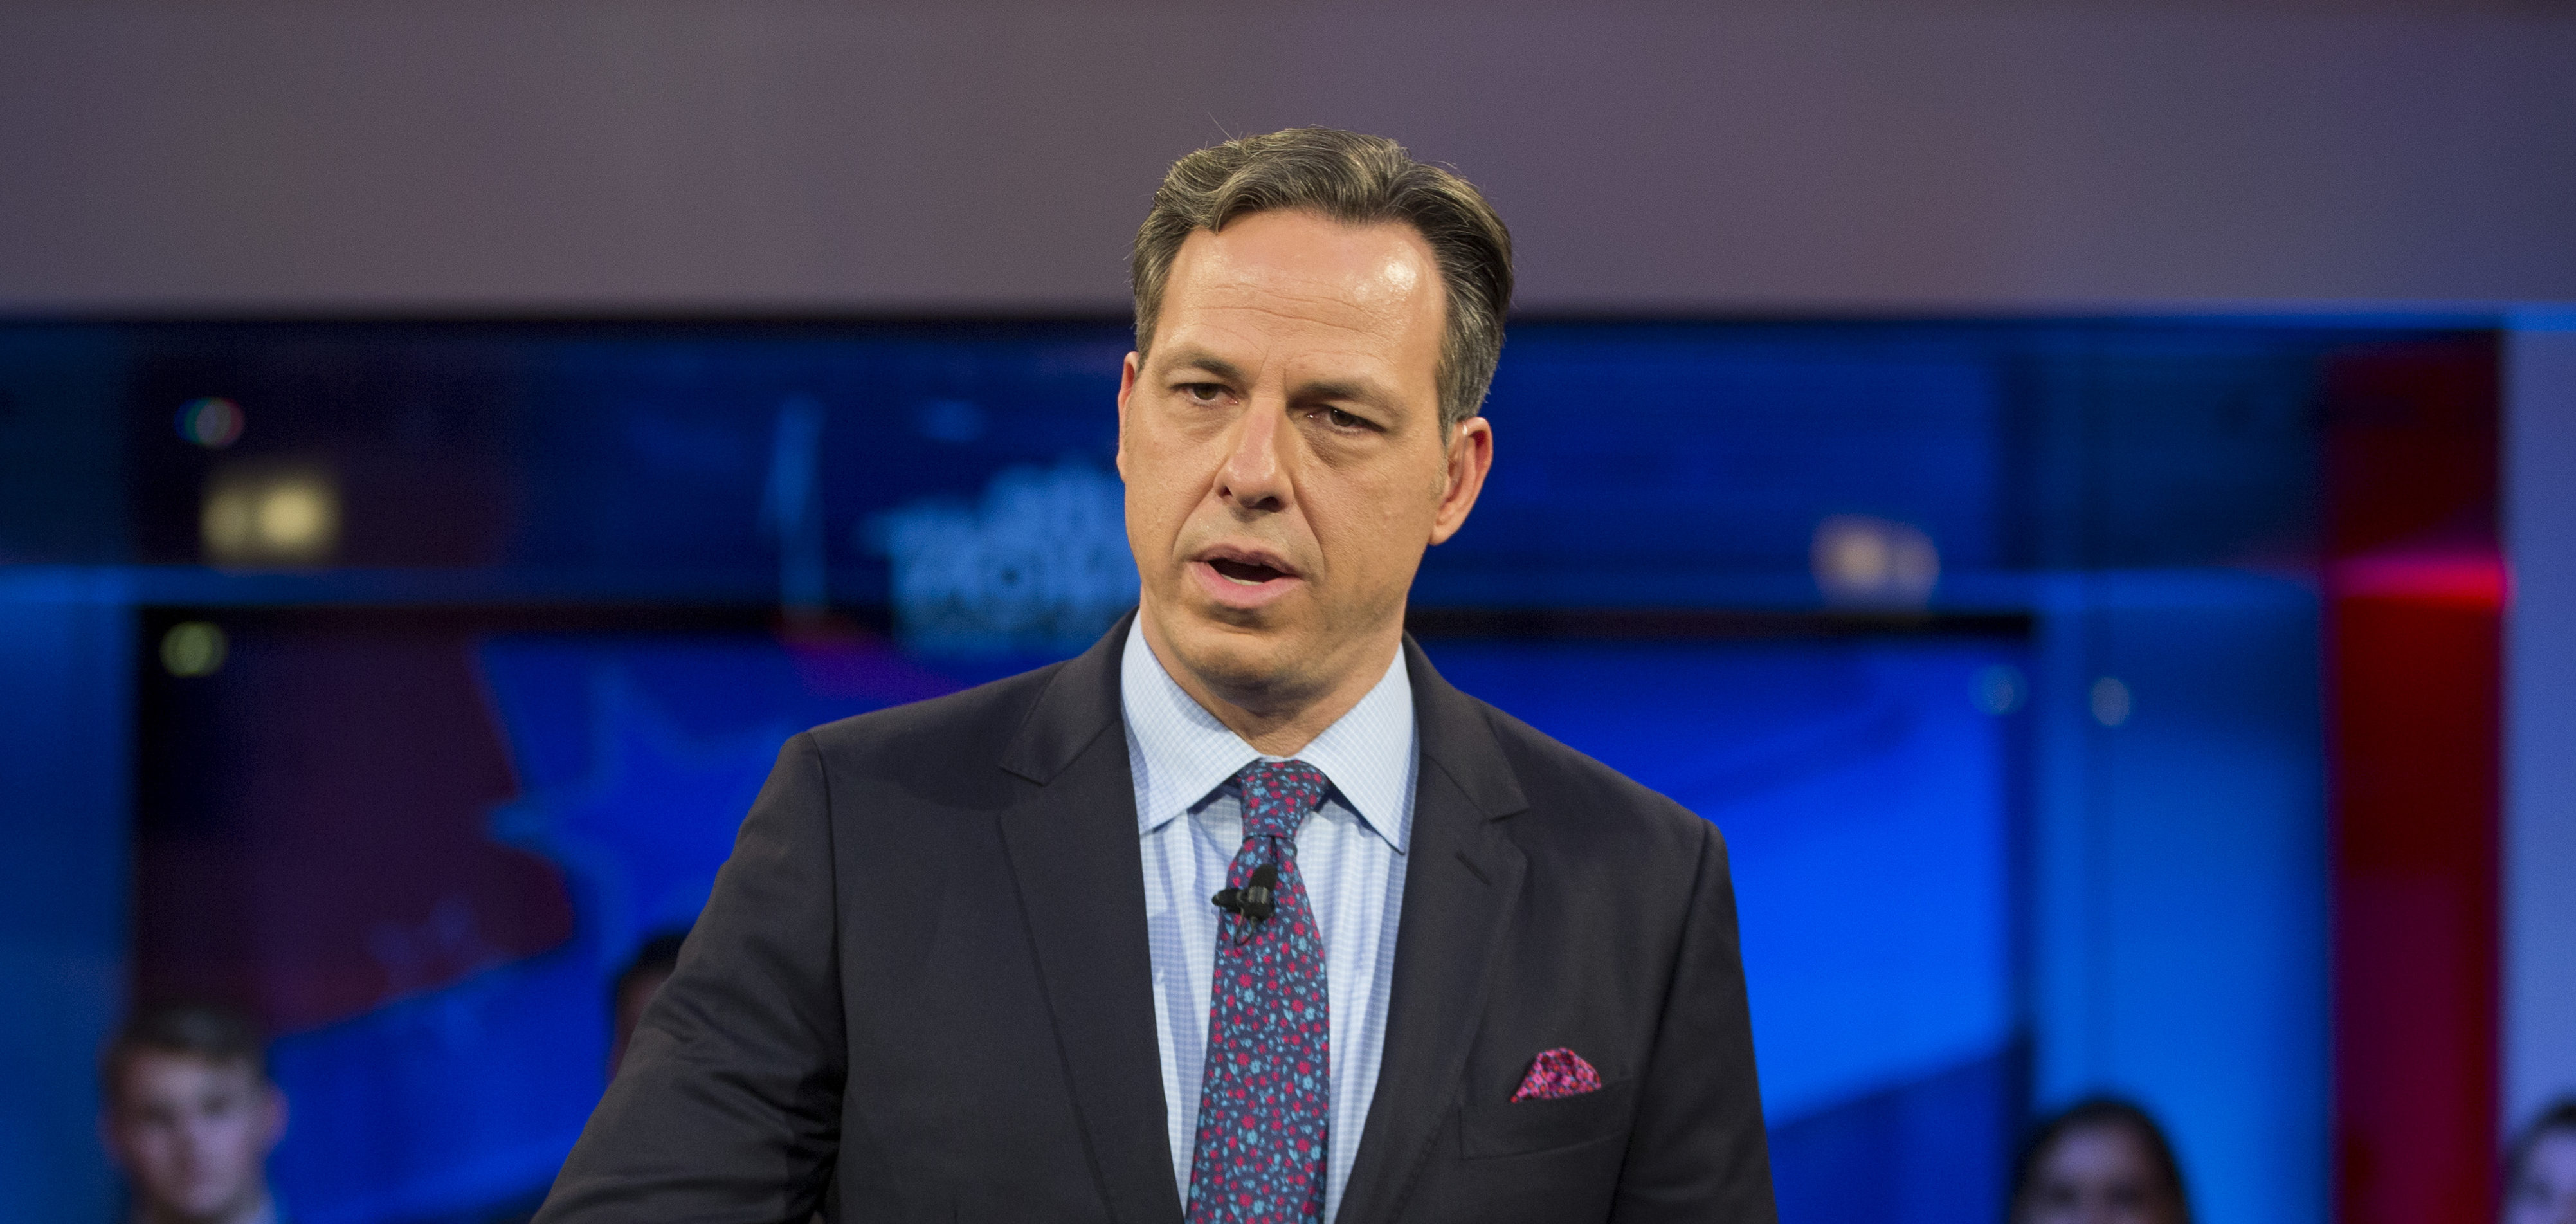 """CAMBRIDGE, MA - DECEMBER 01: Jake Tapper, of CNN's State of the Union, speaks to a crowd at the Harvard Institute of Politics Forum before Trump Campaign Manager Kellyanne Conway and Clinton Campaign Manager Robby Mook enter the room for an event titled """"War Stories: Inside Campaign 2016"""" on December 1, 2016 in Cambridge, Massachusetts. (Photo by Scott Eisen/Getty Images)"""